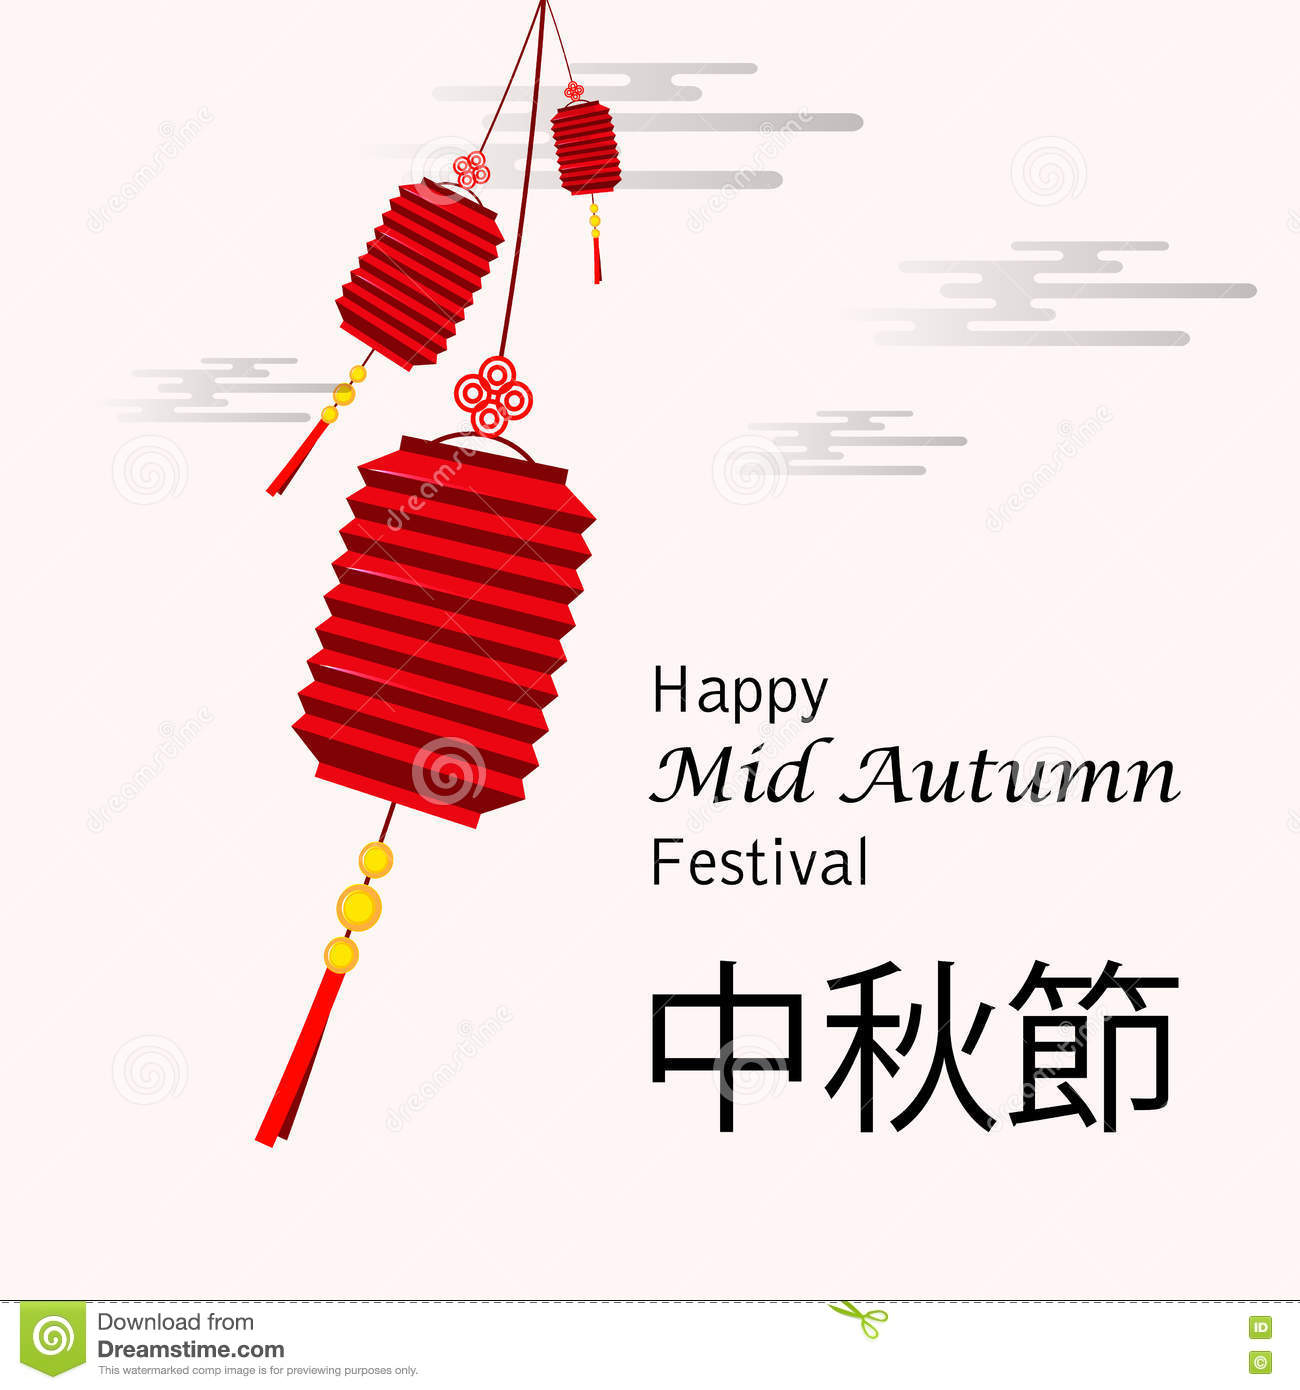 mid autumn festival greeting card littering translates as happy mid